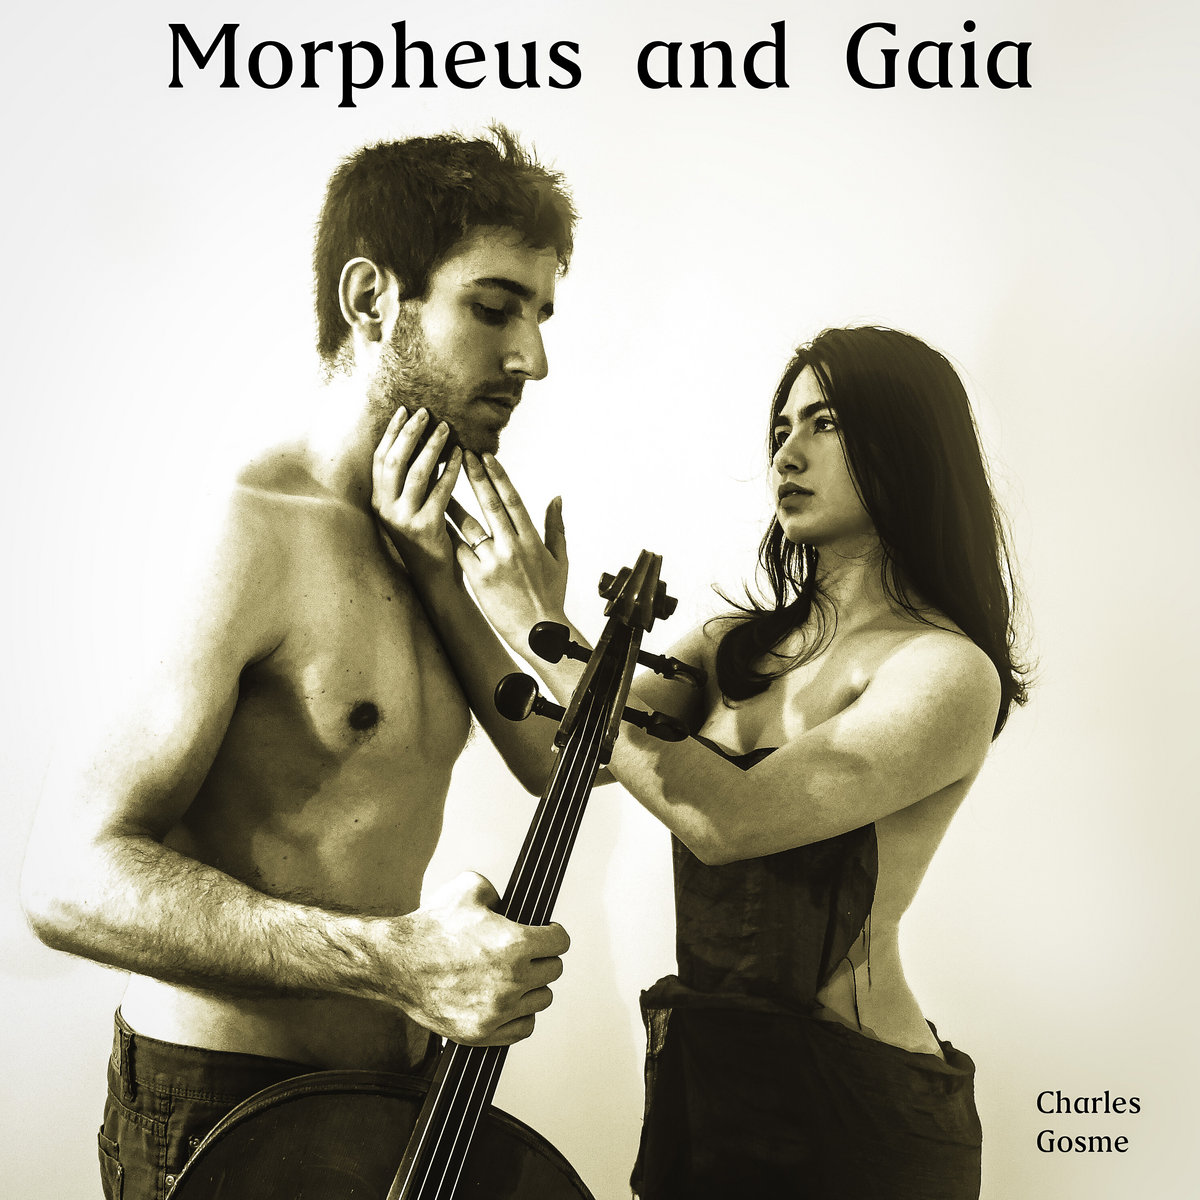 Morpheus and Gaia by Charles Gosme